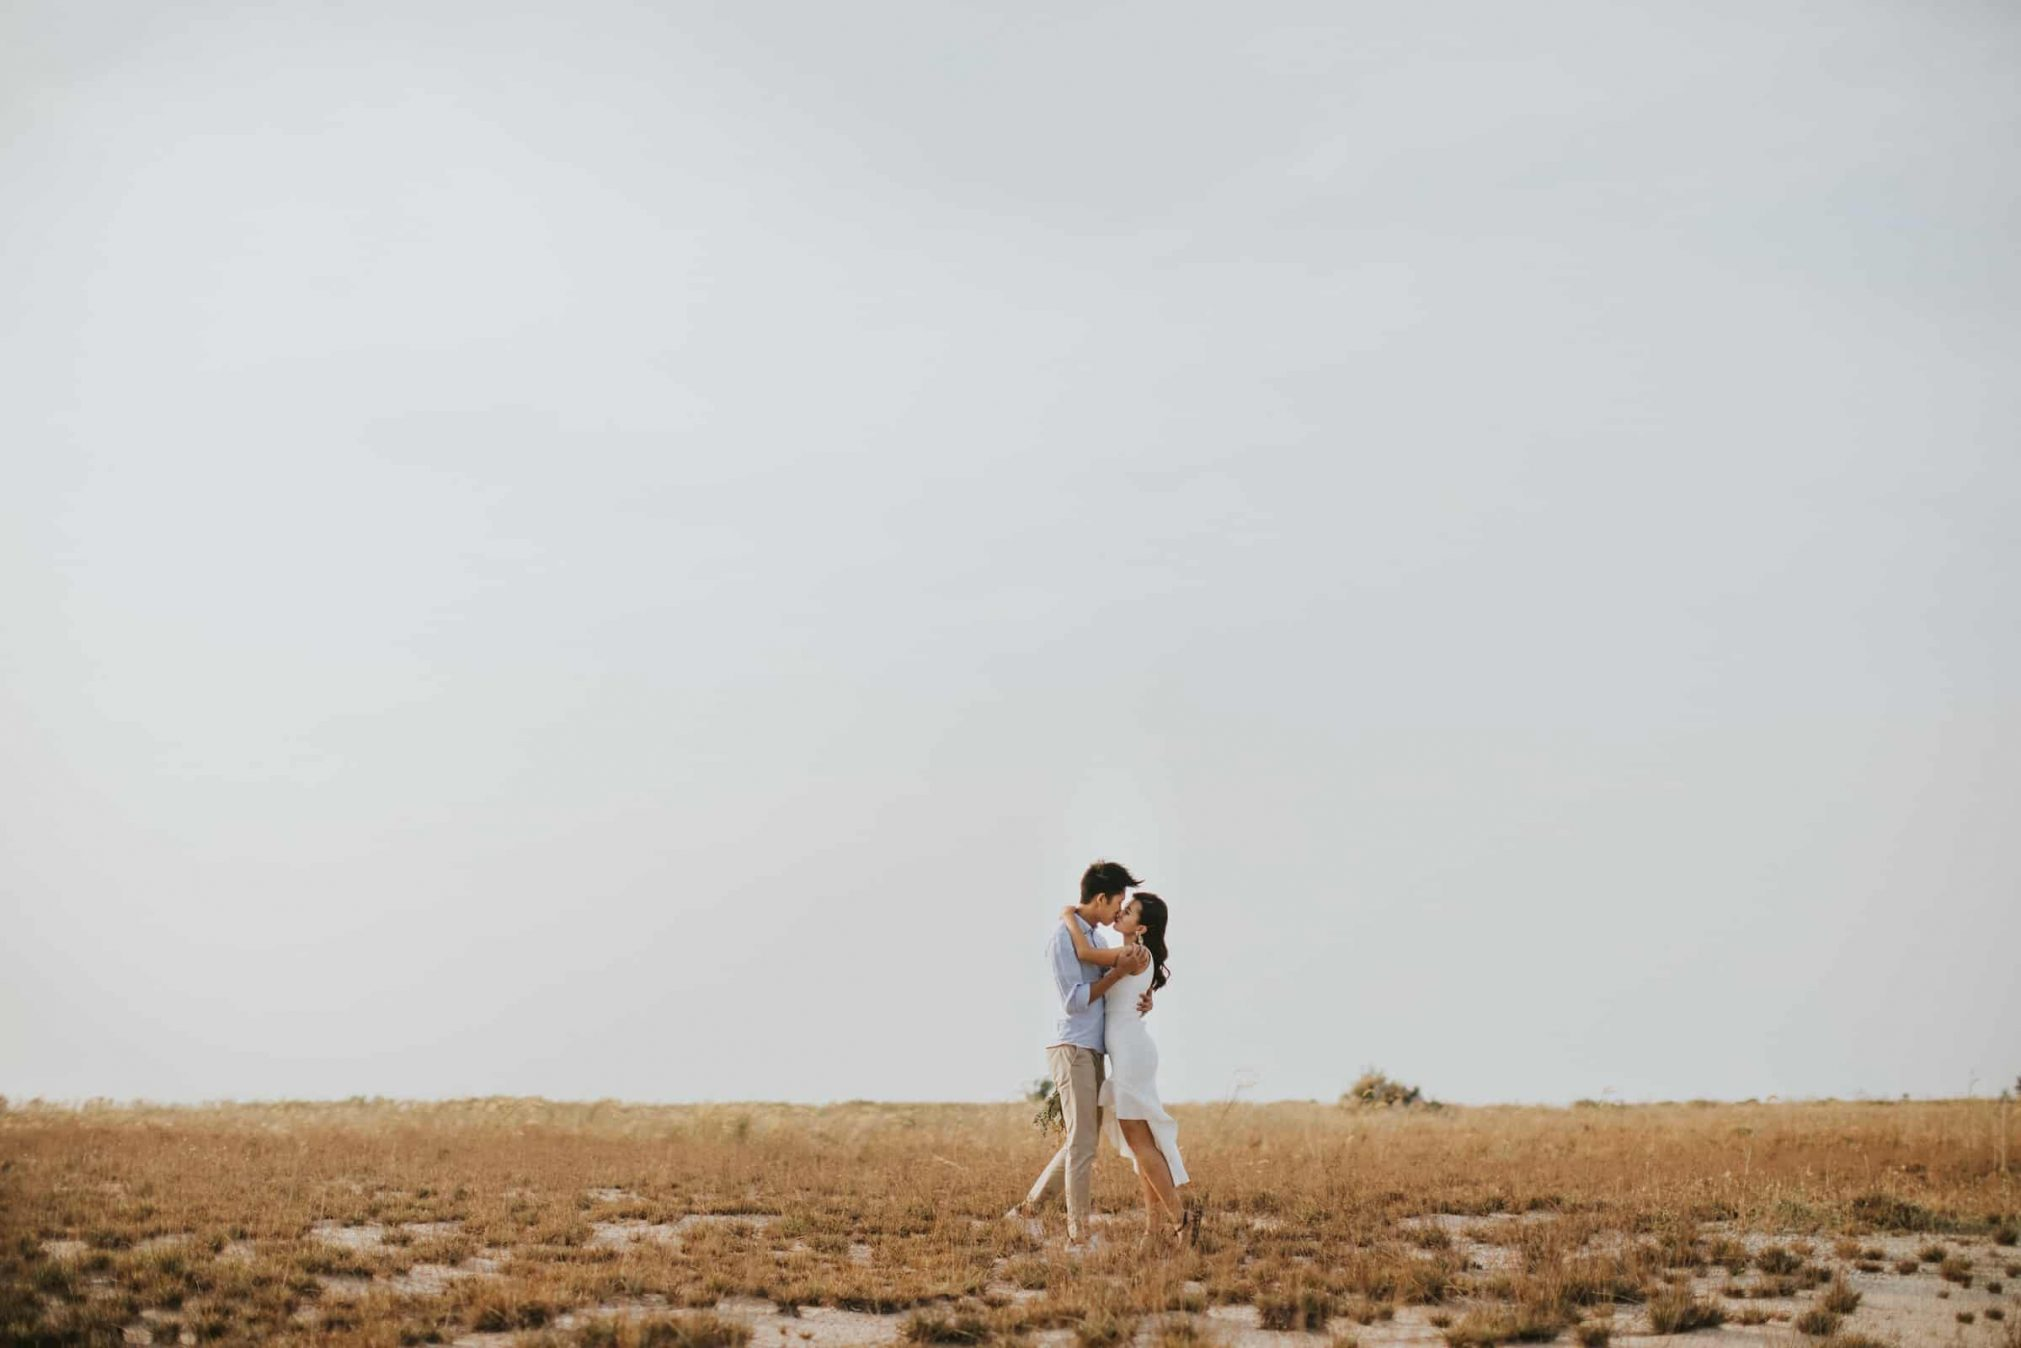 cliff choong destination portrait and wedding photographer malaysia kuala lumpur prewedding sunset golden sunrise shots bride and groom yellow grass couple kiss romantic intimate moment scene